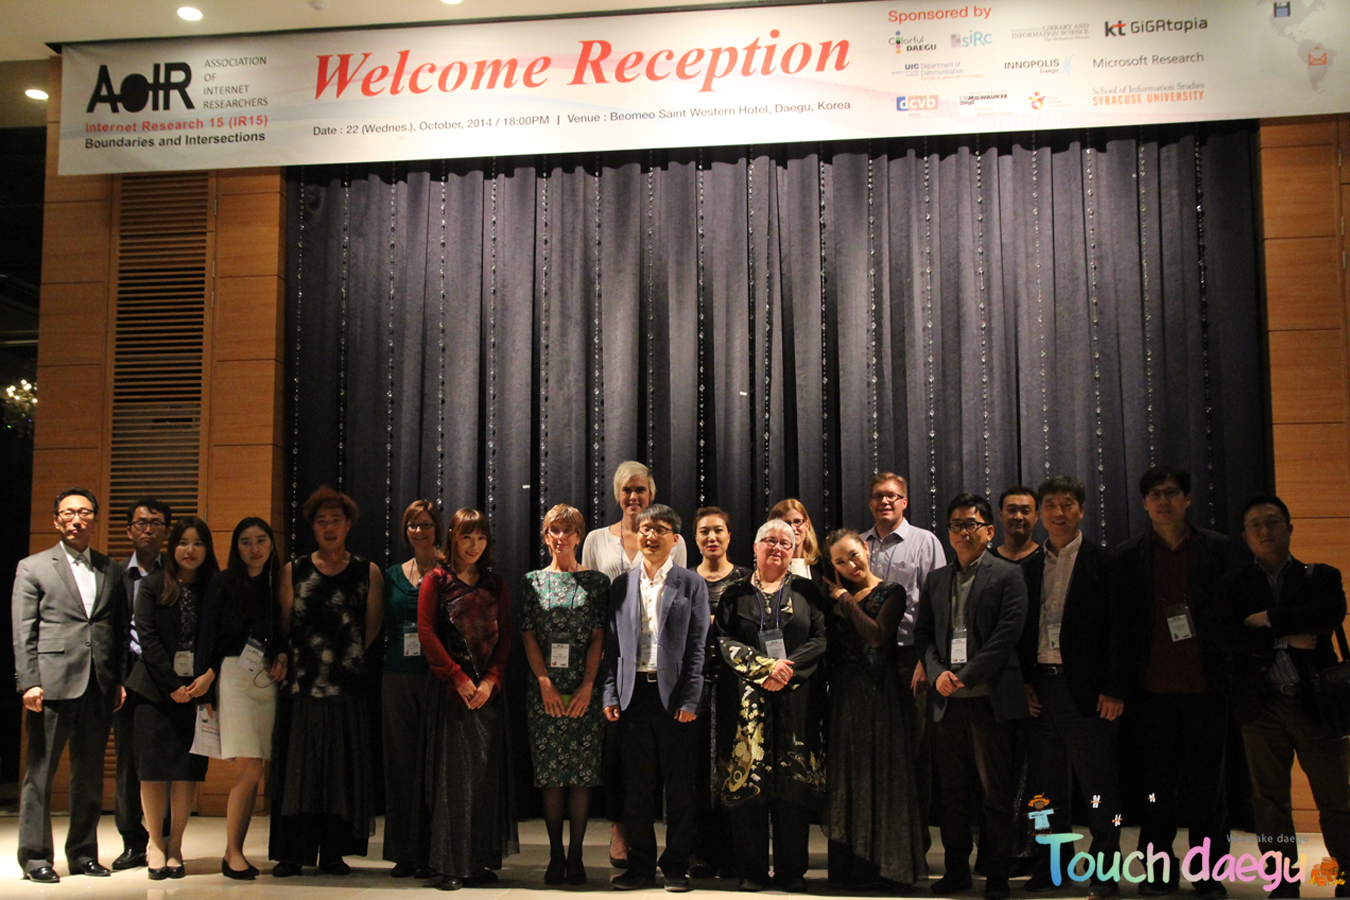 A group picture of participants in AoIR 2014